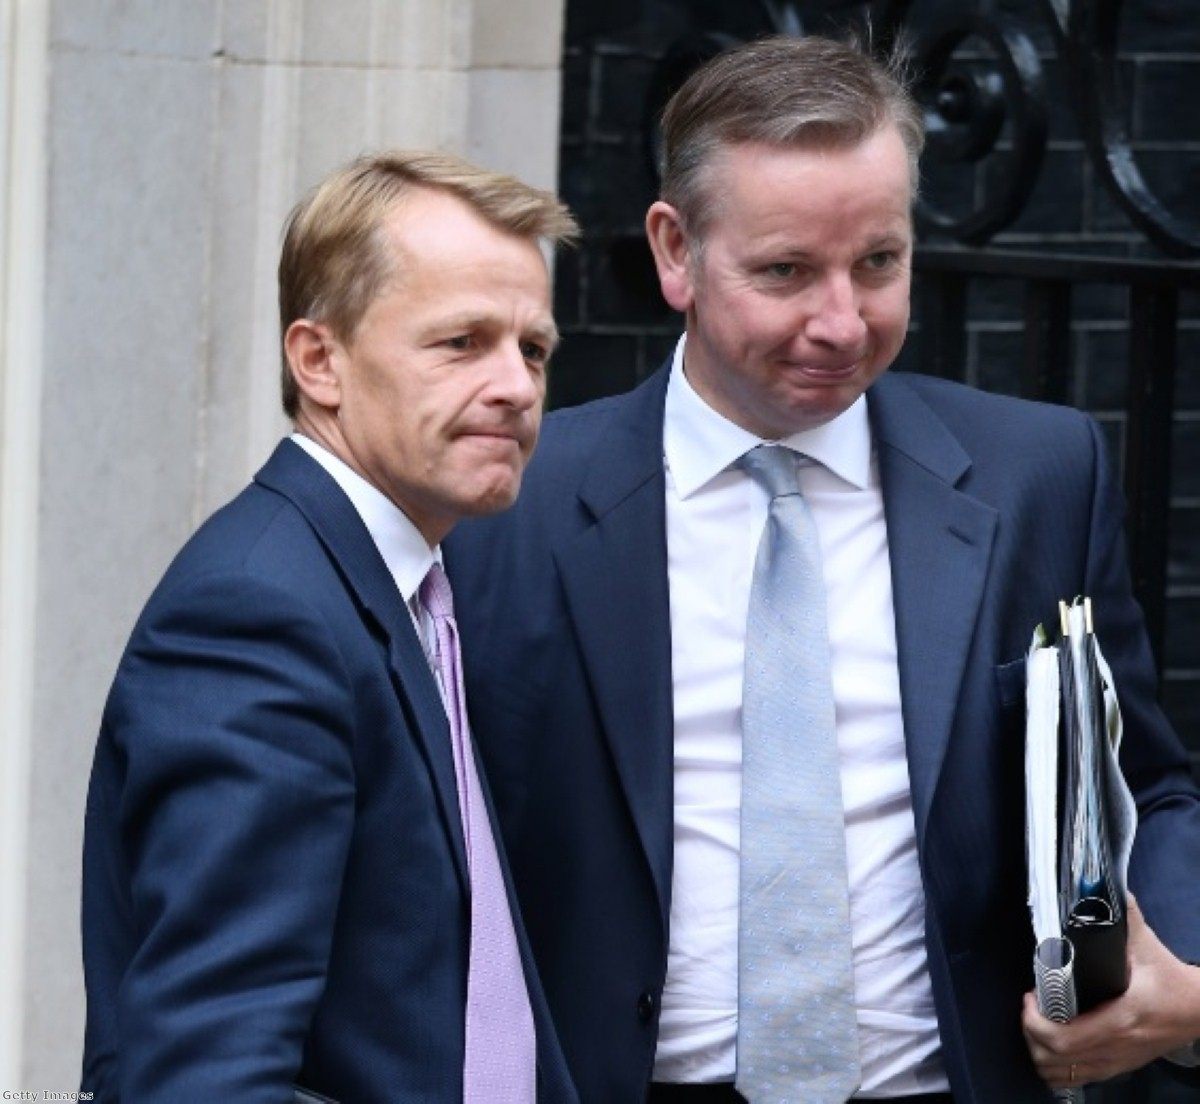 David Laws (l) reportedly warned Michael Gove about the change, but was overruled